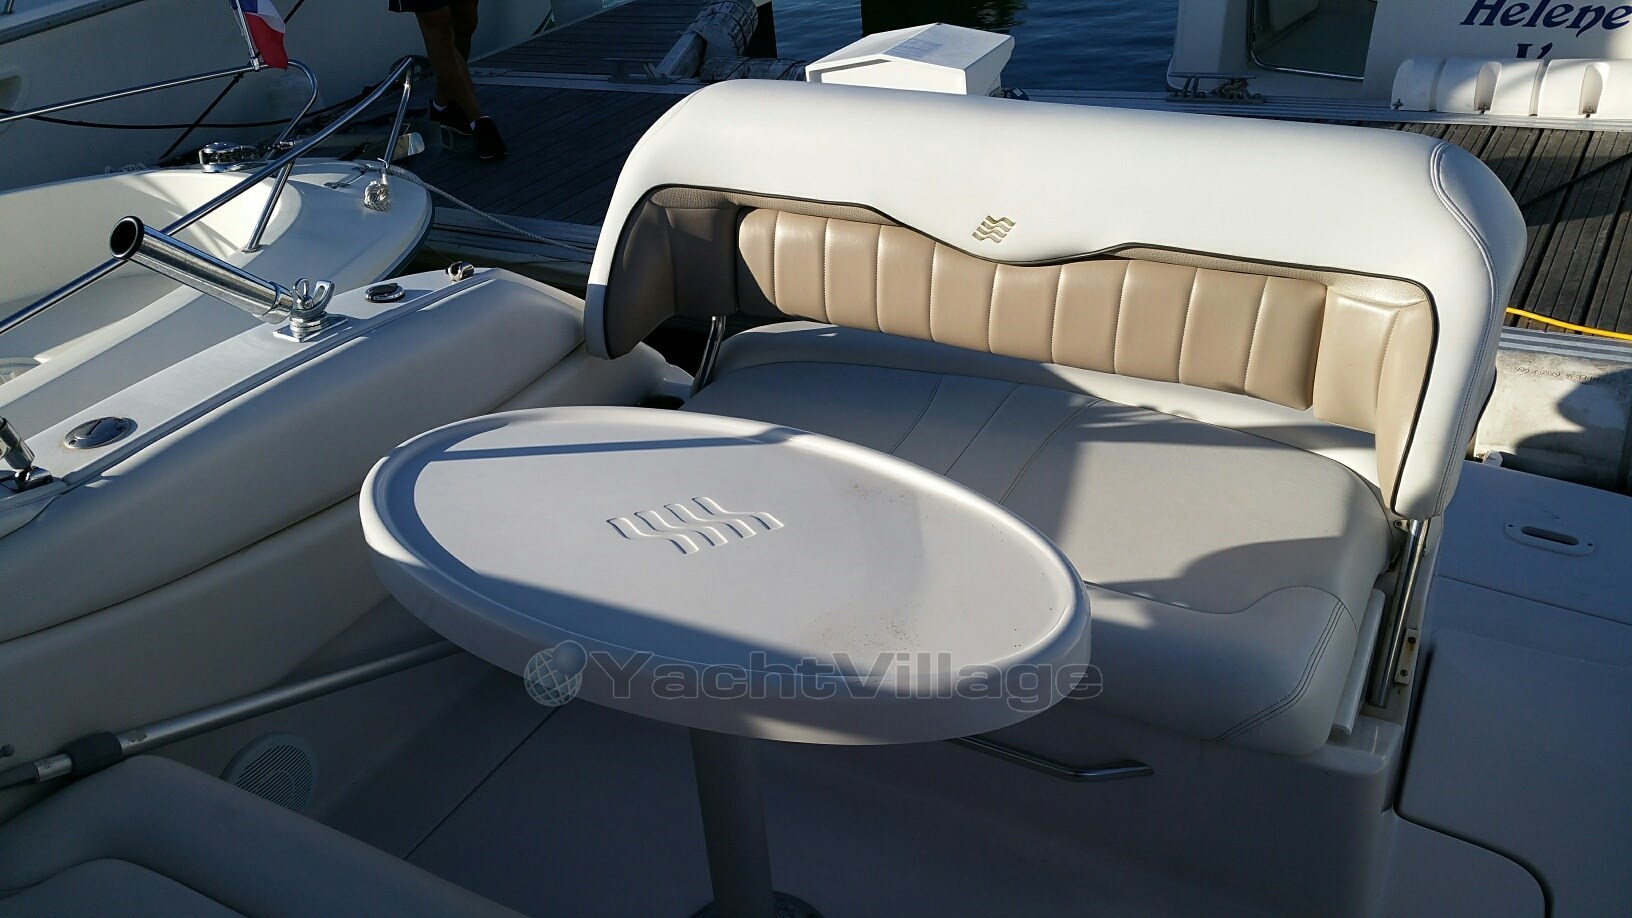 Four Winns Vista 258, preowned motorboat for sale in (France)